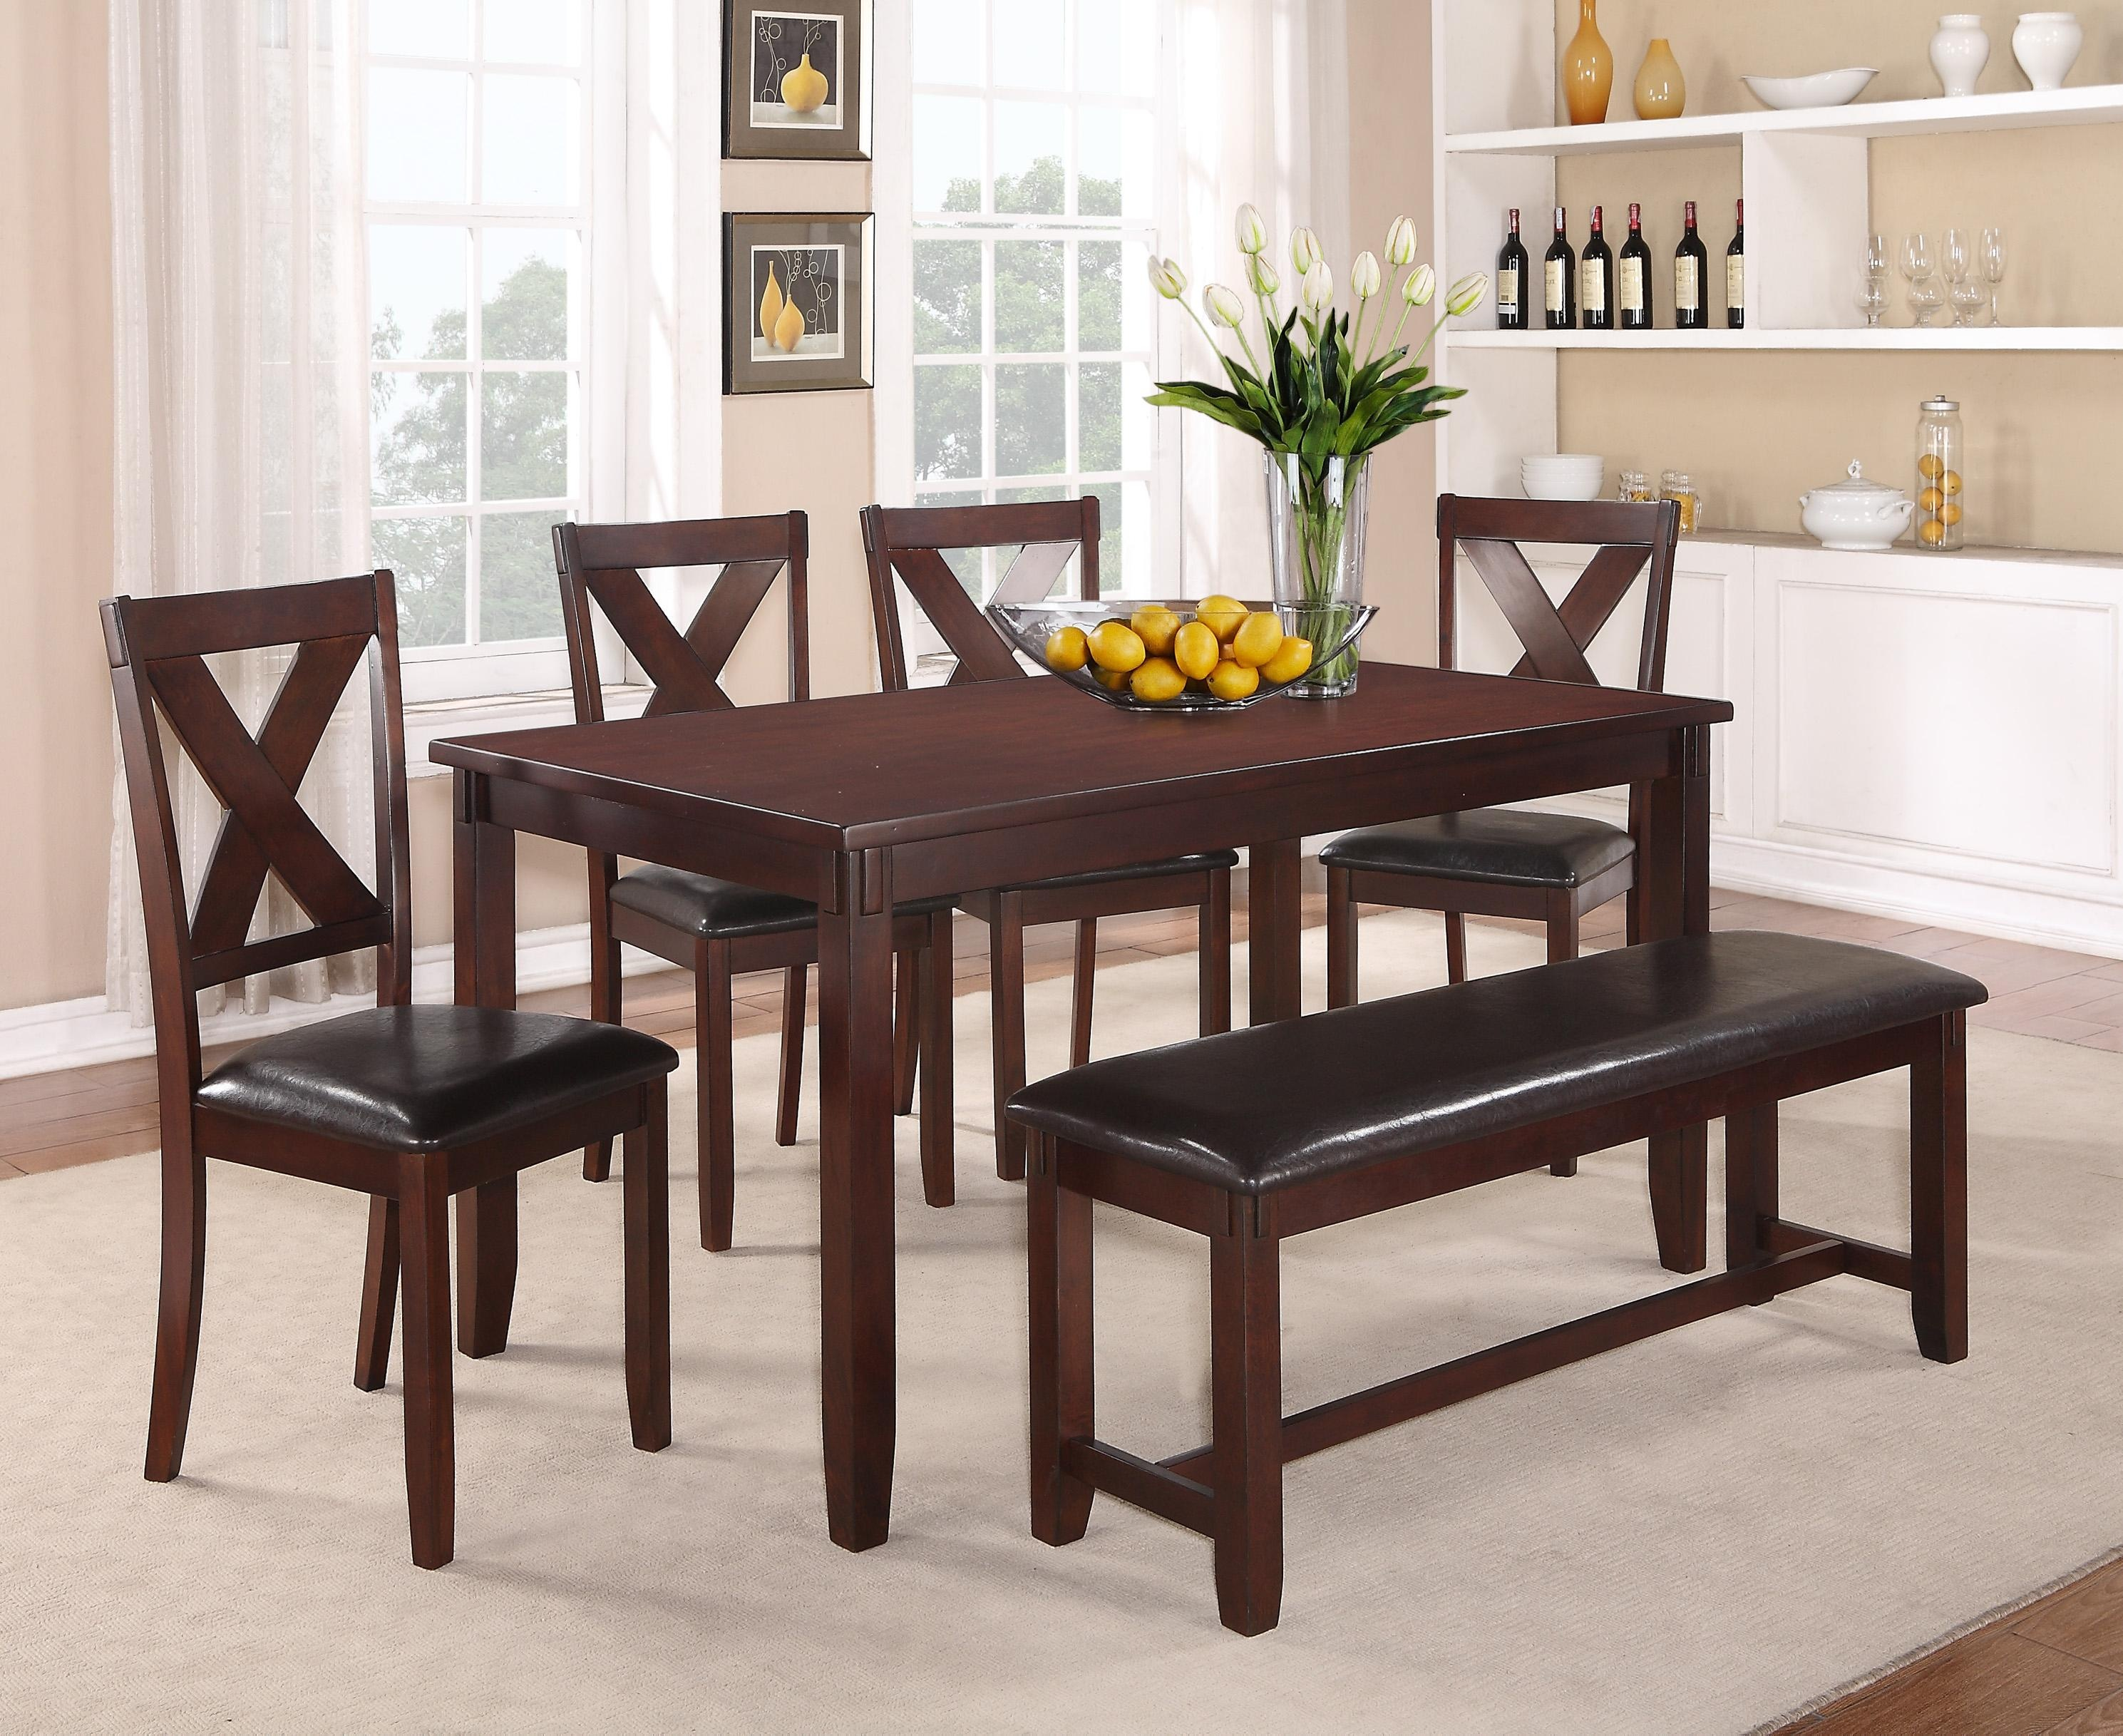 Furniture clearance center wood dinettes for Comedores homecenter